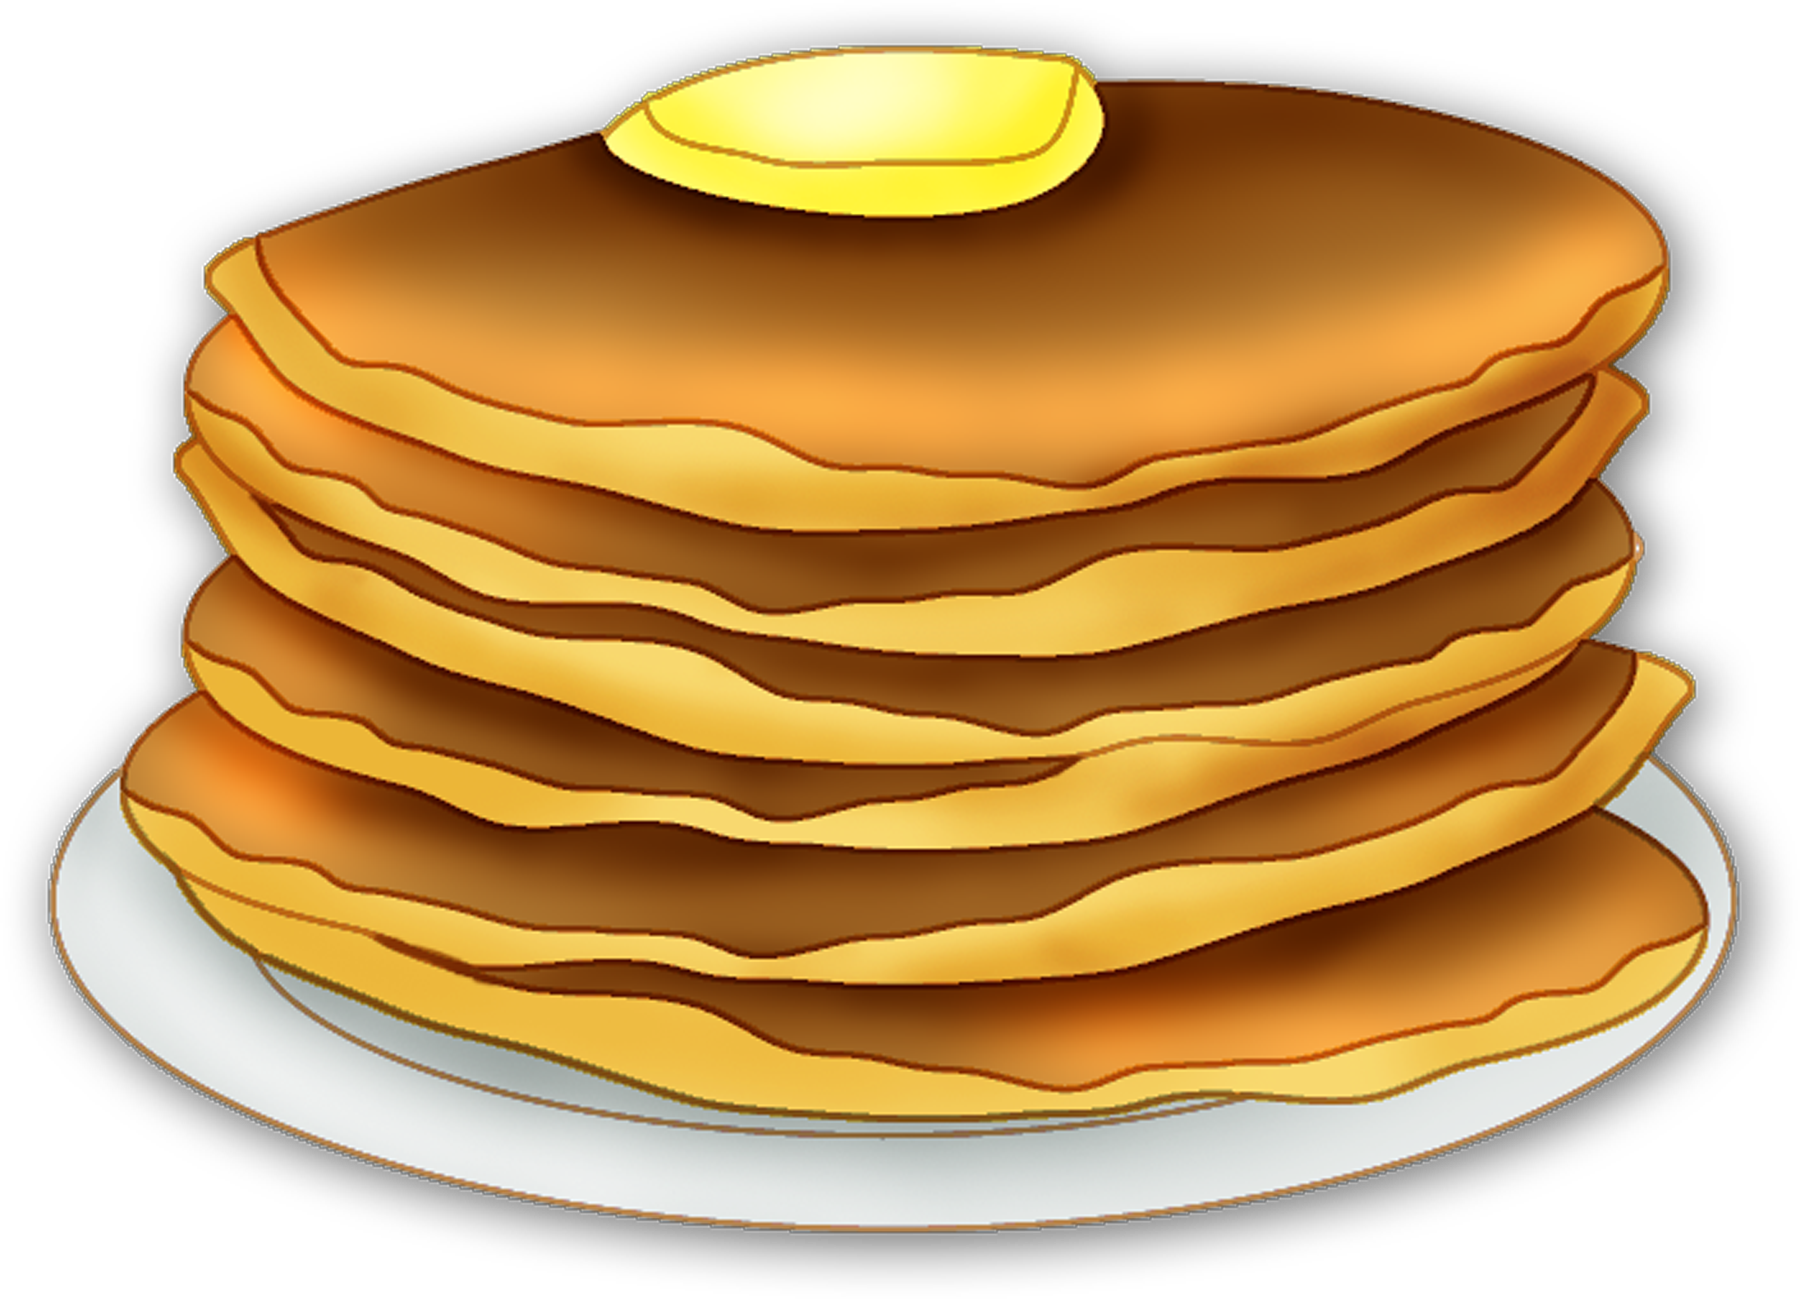 Images Pancakes Clipart Page 2-Images Pancakes Clipart Page 2-8